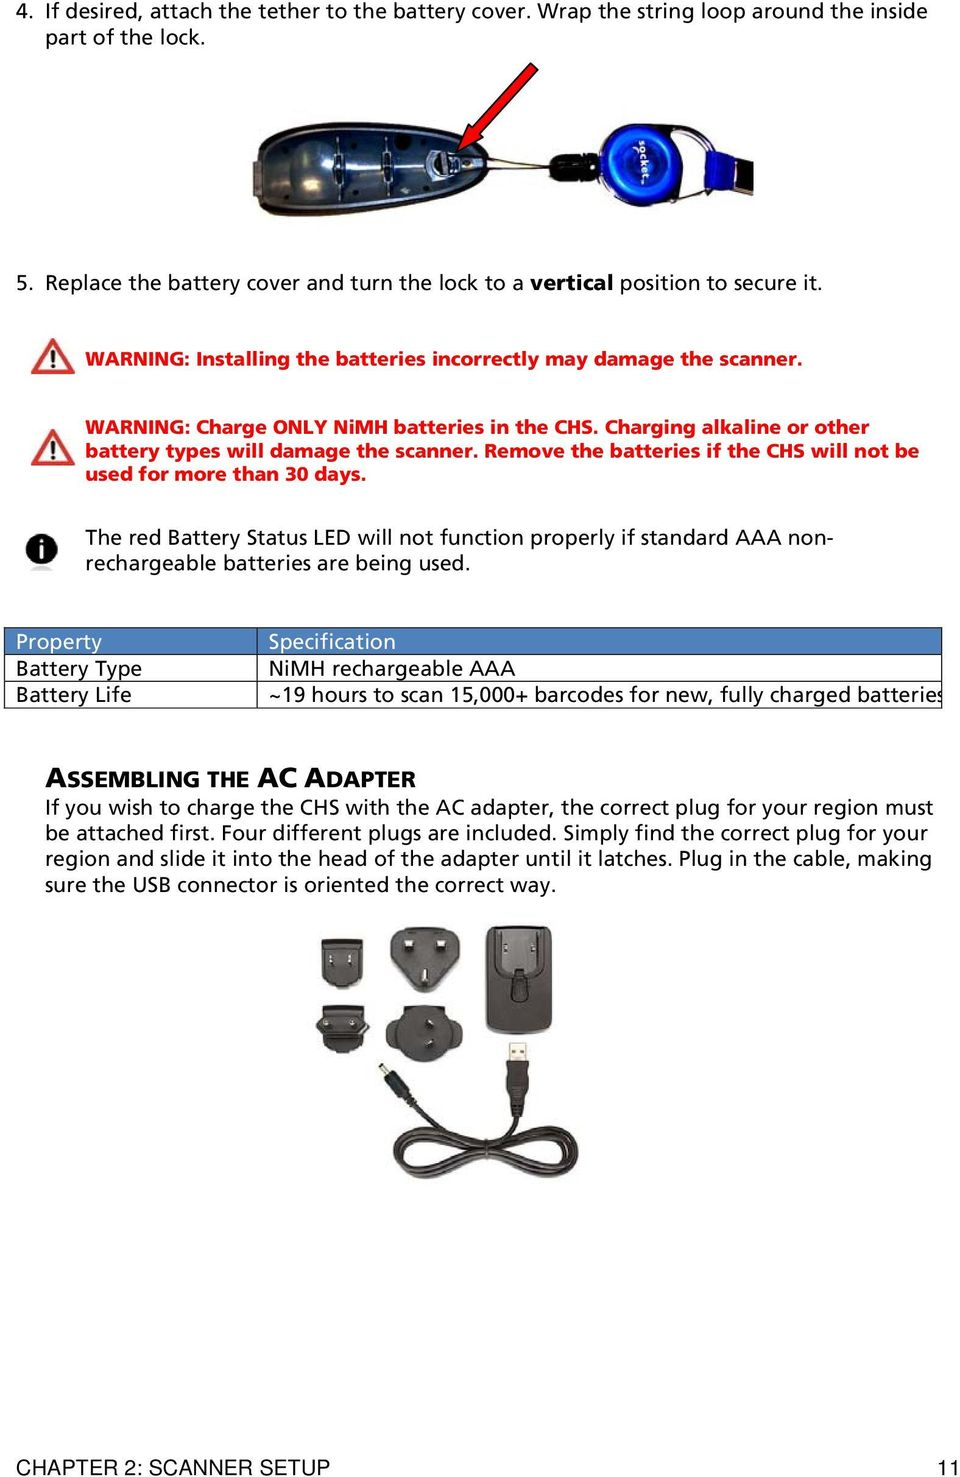 Remove the batteries if the CHS will not be used for more than 30 days. The red Battery Status LED will not function properly if standard AAA nonrechargeable batteries are being used.